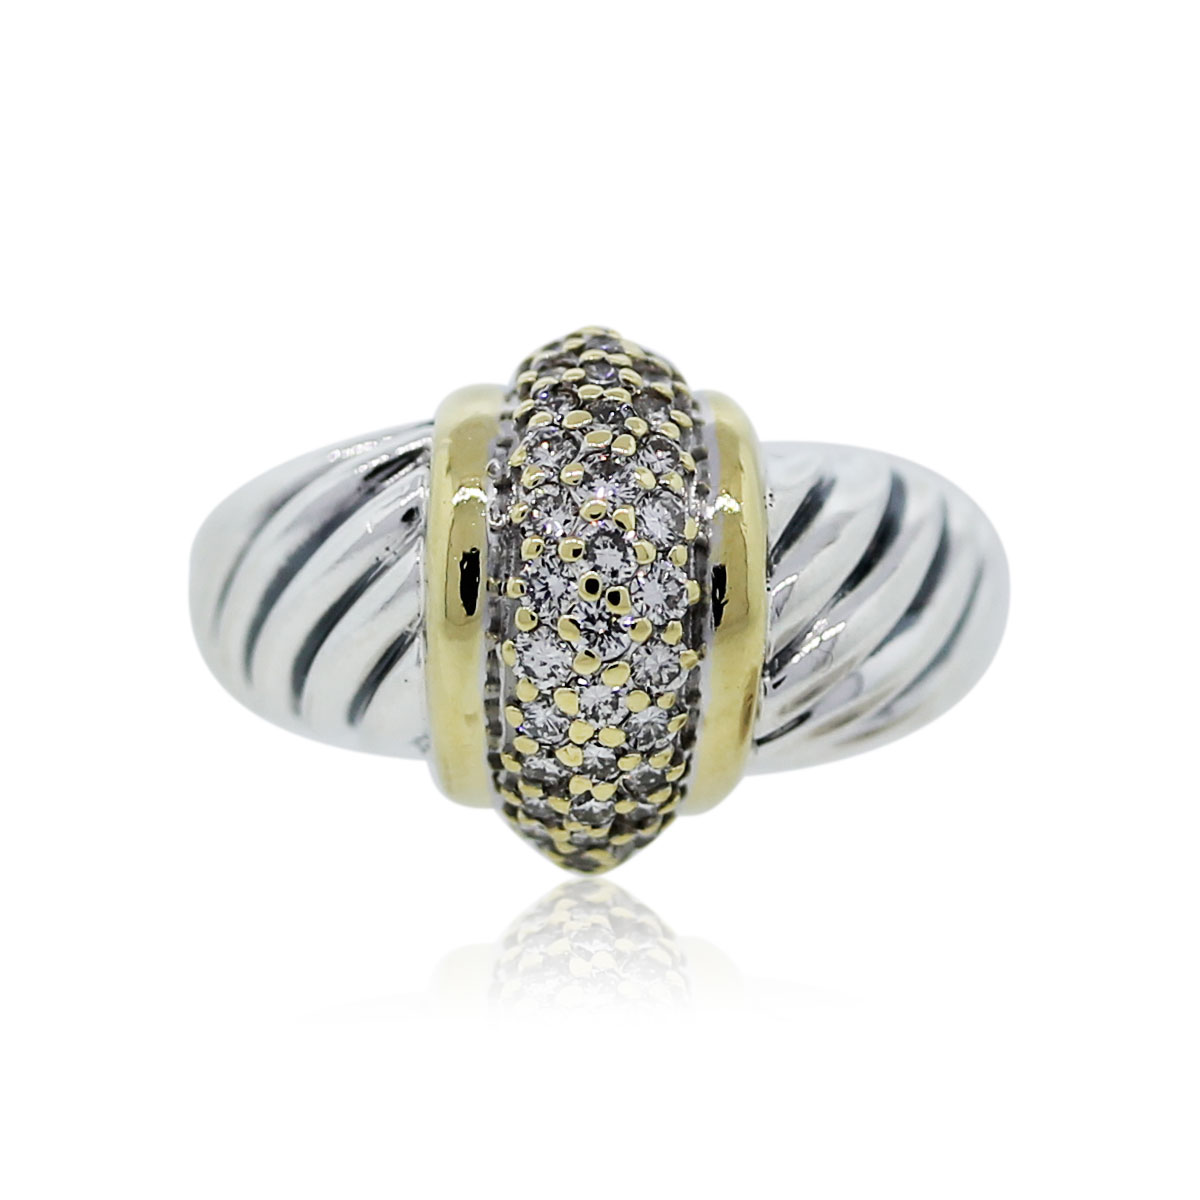 You are viewing this David Yurman two tone diamond ring!